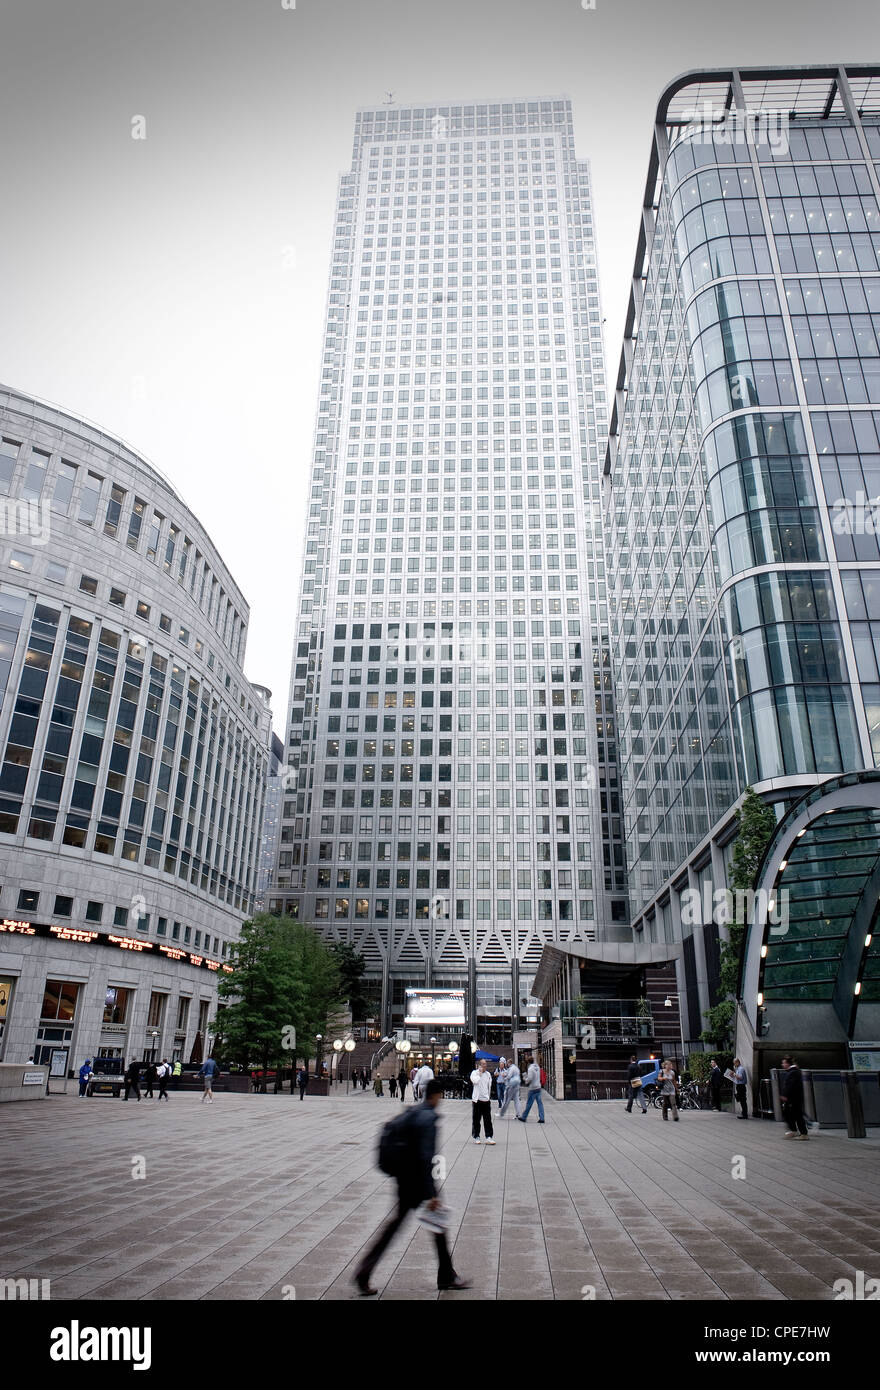 Canary Wharf, Docklands, London, England, United Kingdom, Europe - Stock Image